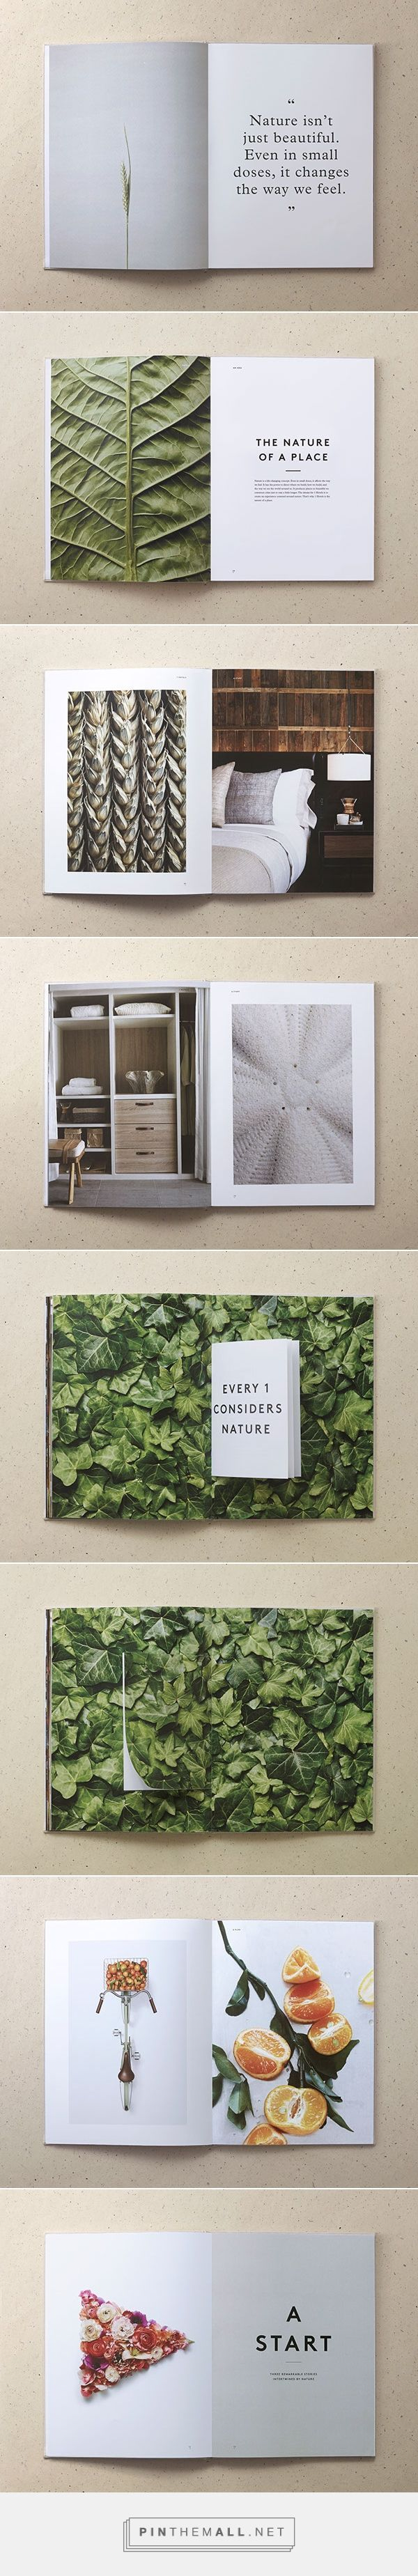 1 Hotels / by Jules Tardy & Christian Cervantes | Brochure, Catalog, Portfolio Design | Portfolio inspiration